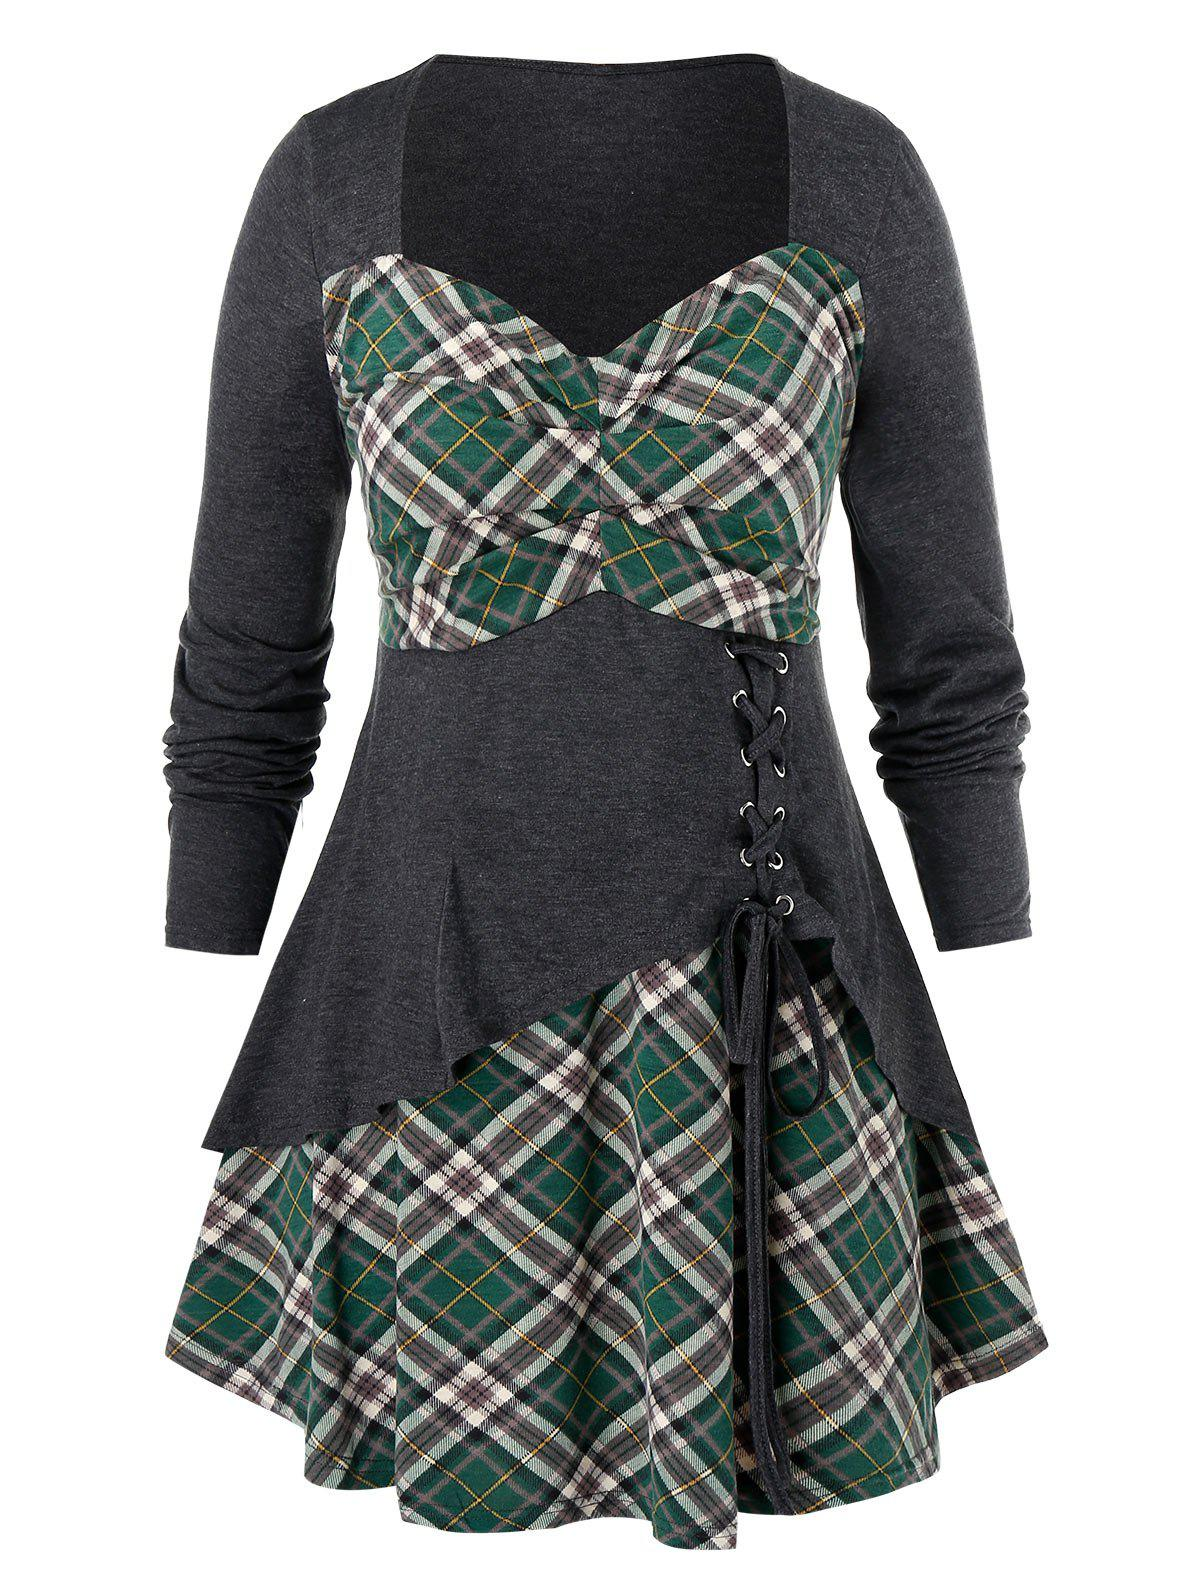 Affordable Plus Size Plaid Lace Up Tunic T Shirt